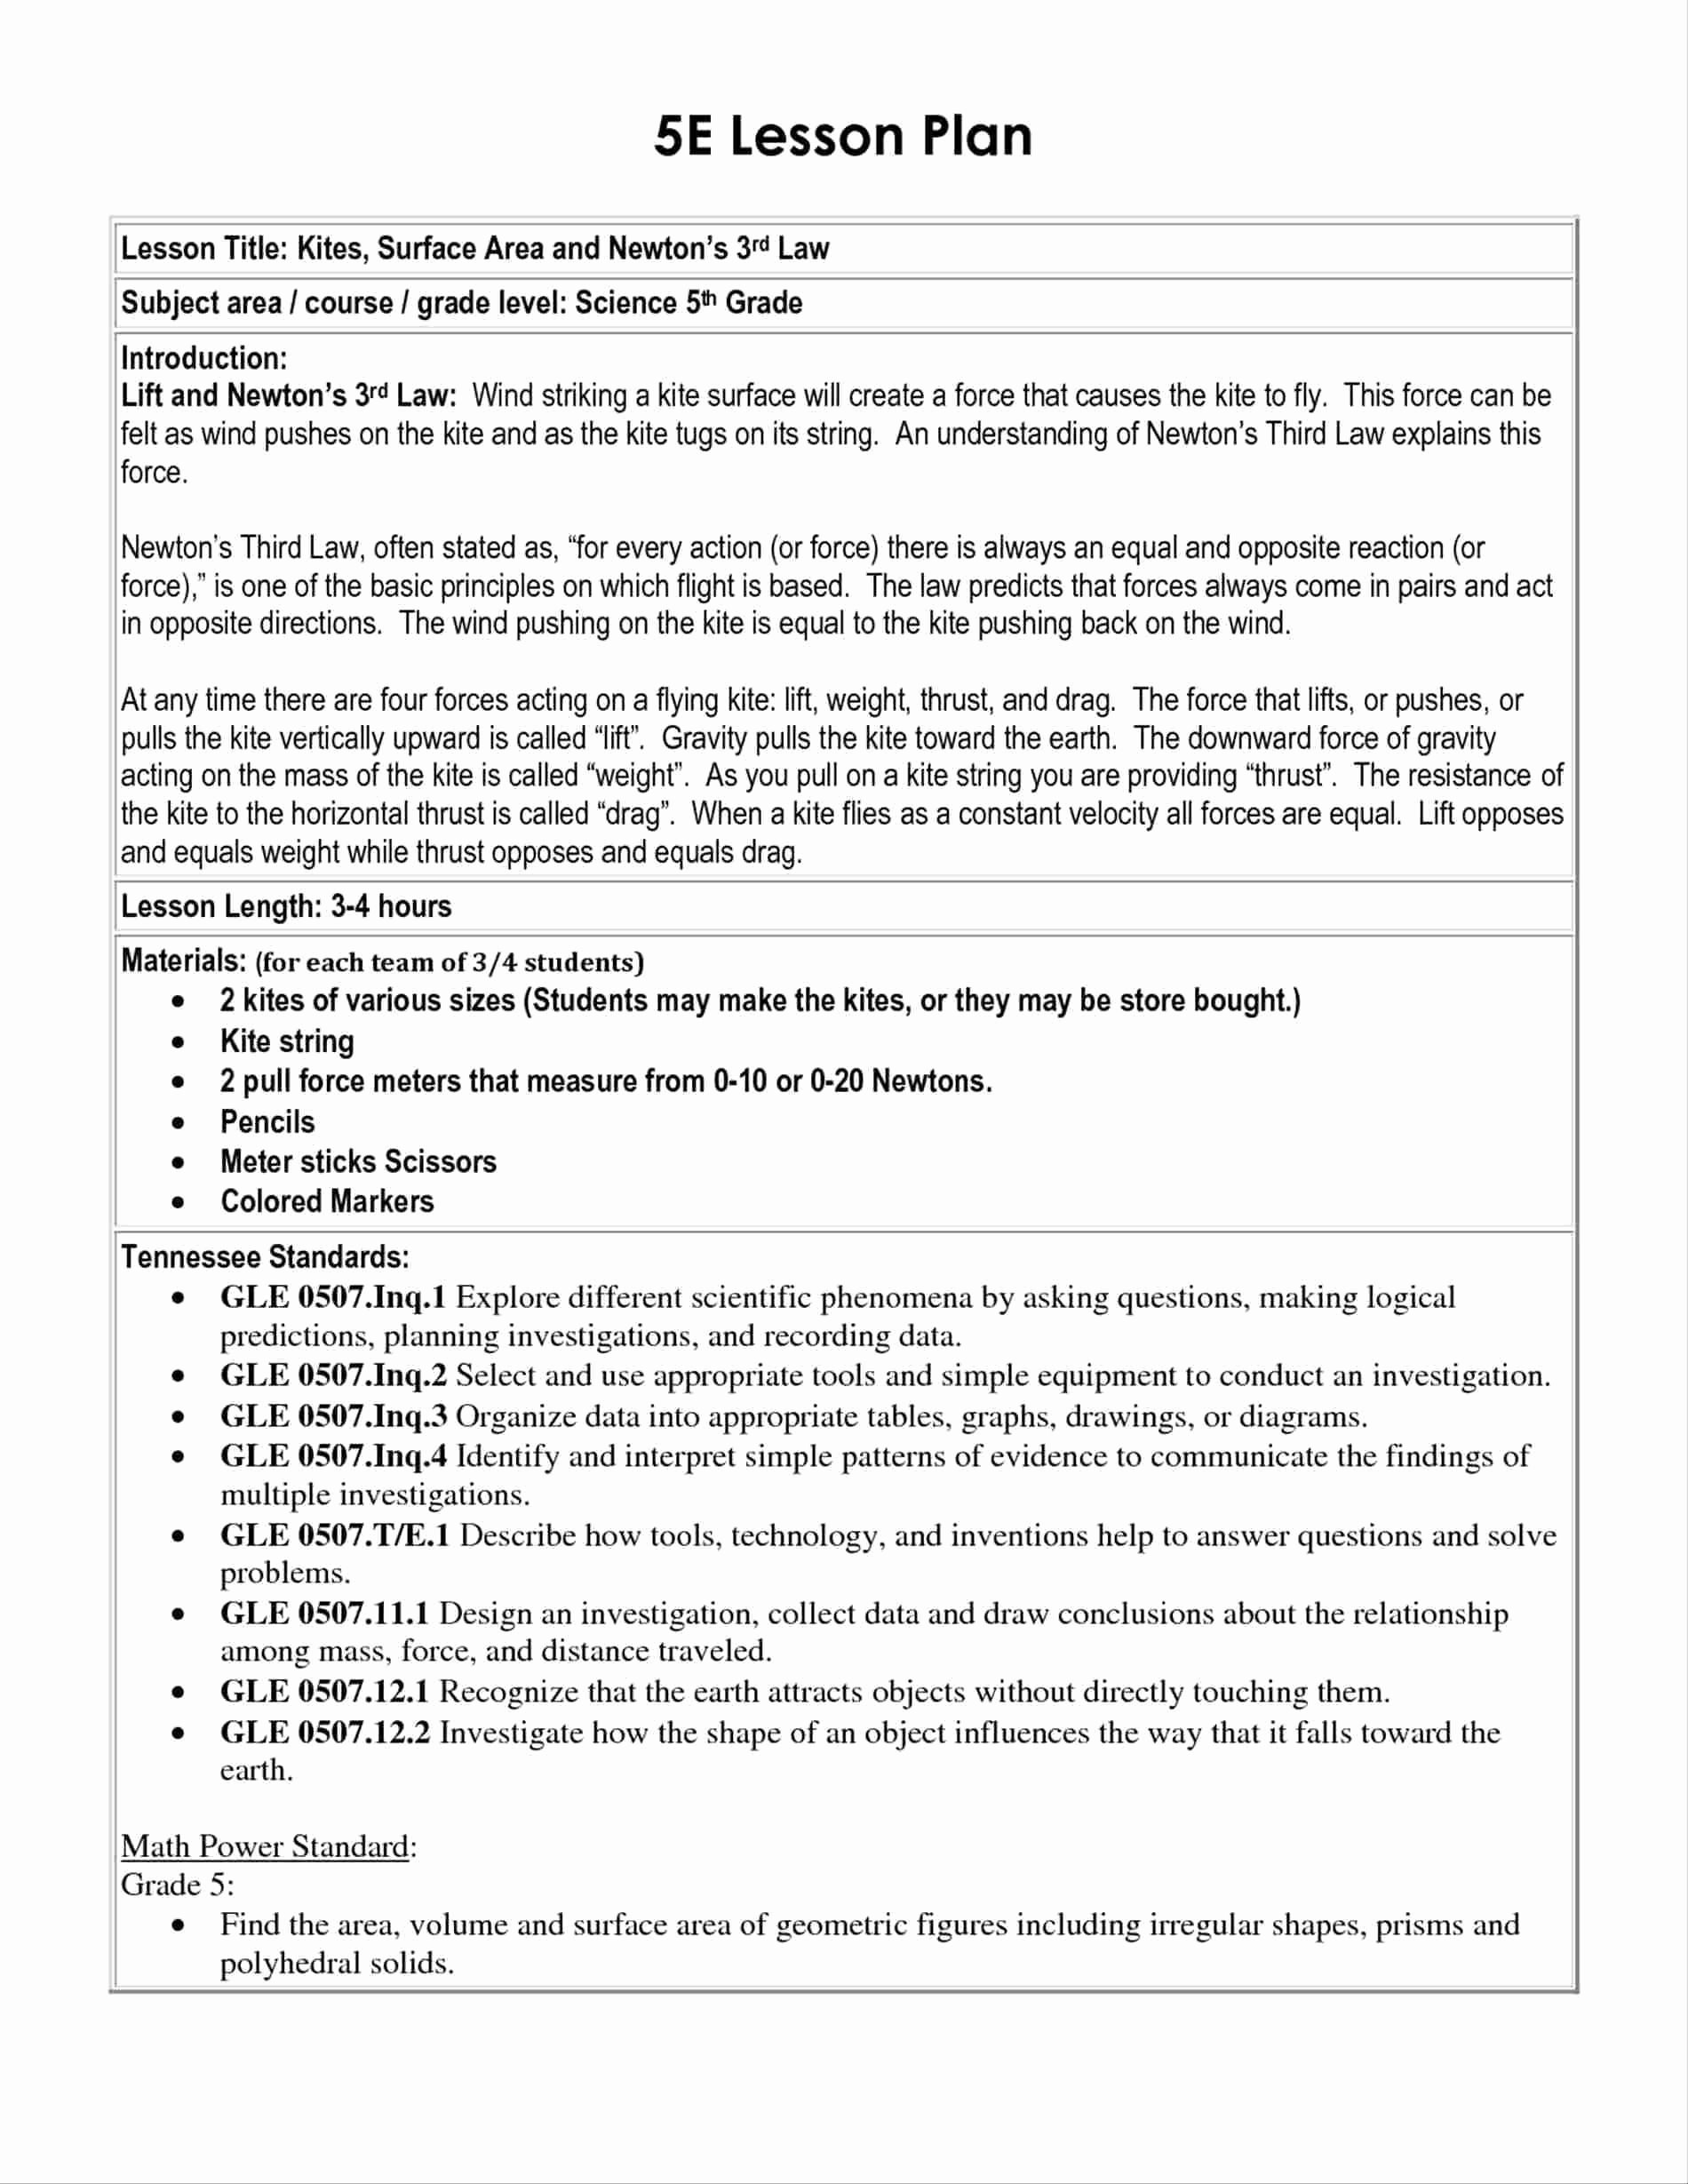 7 Step Lesson Plan Awesome 7 Step Lesson Plan Template Unique top Result 50 Luxury 5e Learning – Learning